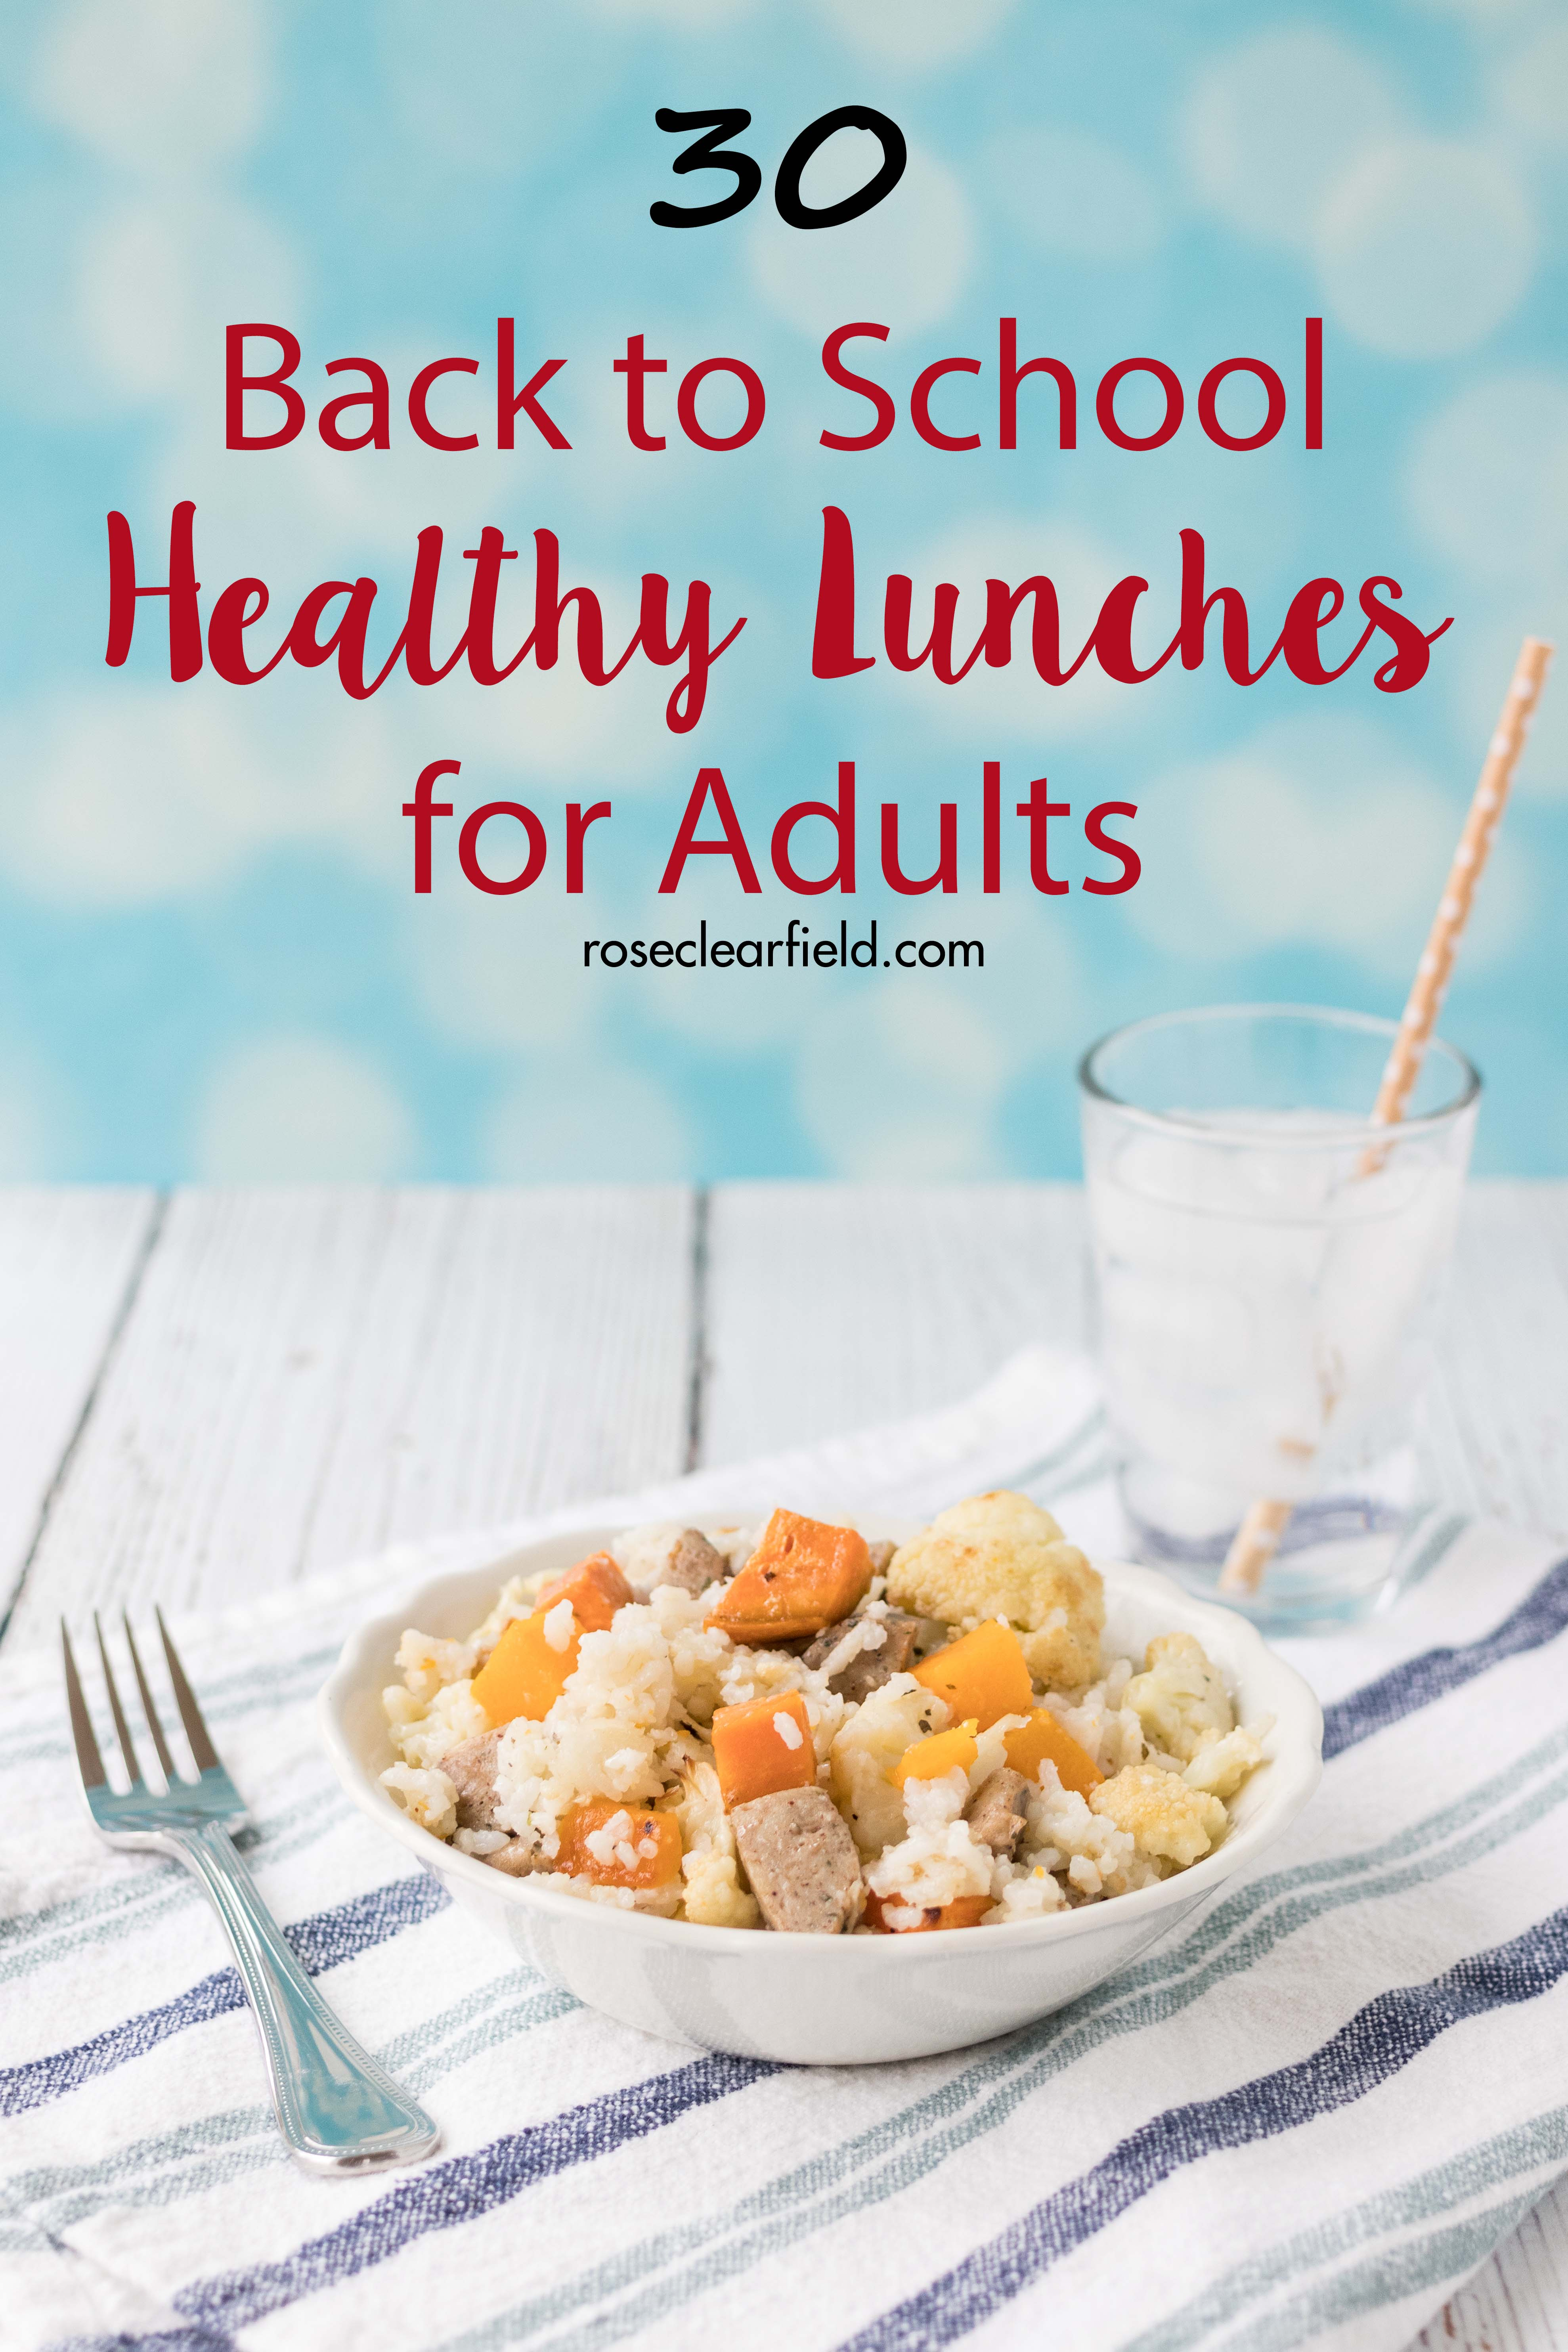 Back to School Healthy Lunches for Adults | https://www.roseclearfield.com